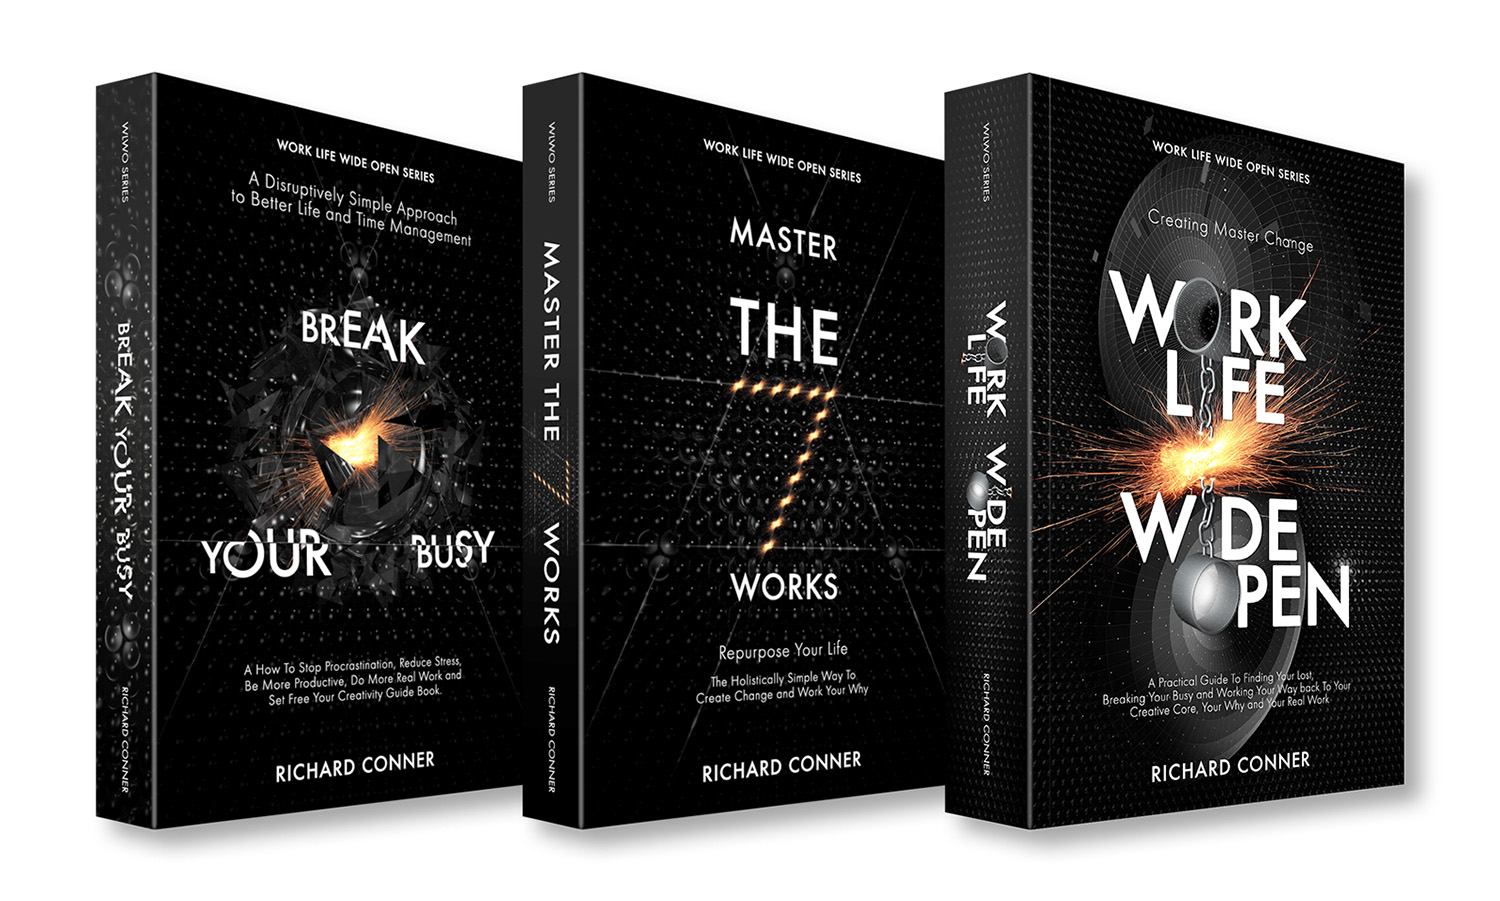 The  Work Life Wide Open Series . ' Break Your Busy - Set Your Creativity Free ', ' Master The Seven Works - Repurpose Your Life ' and ' Work Life Wide Open - Create Master Change '.